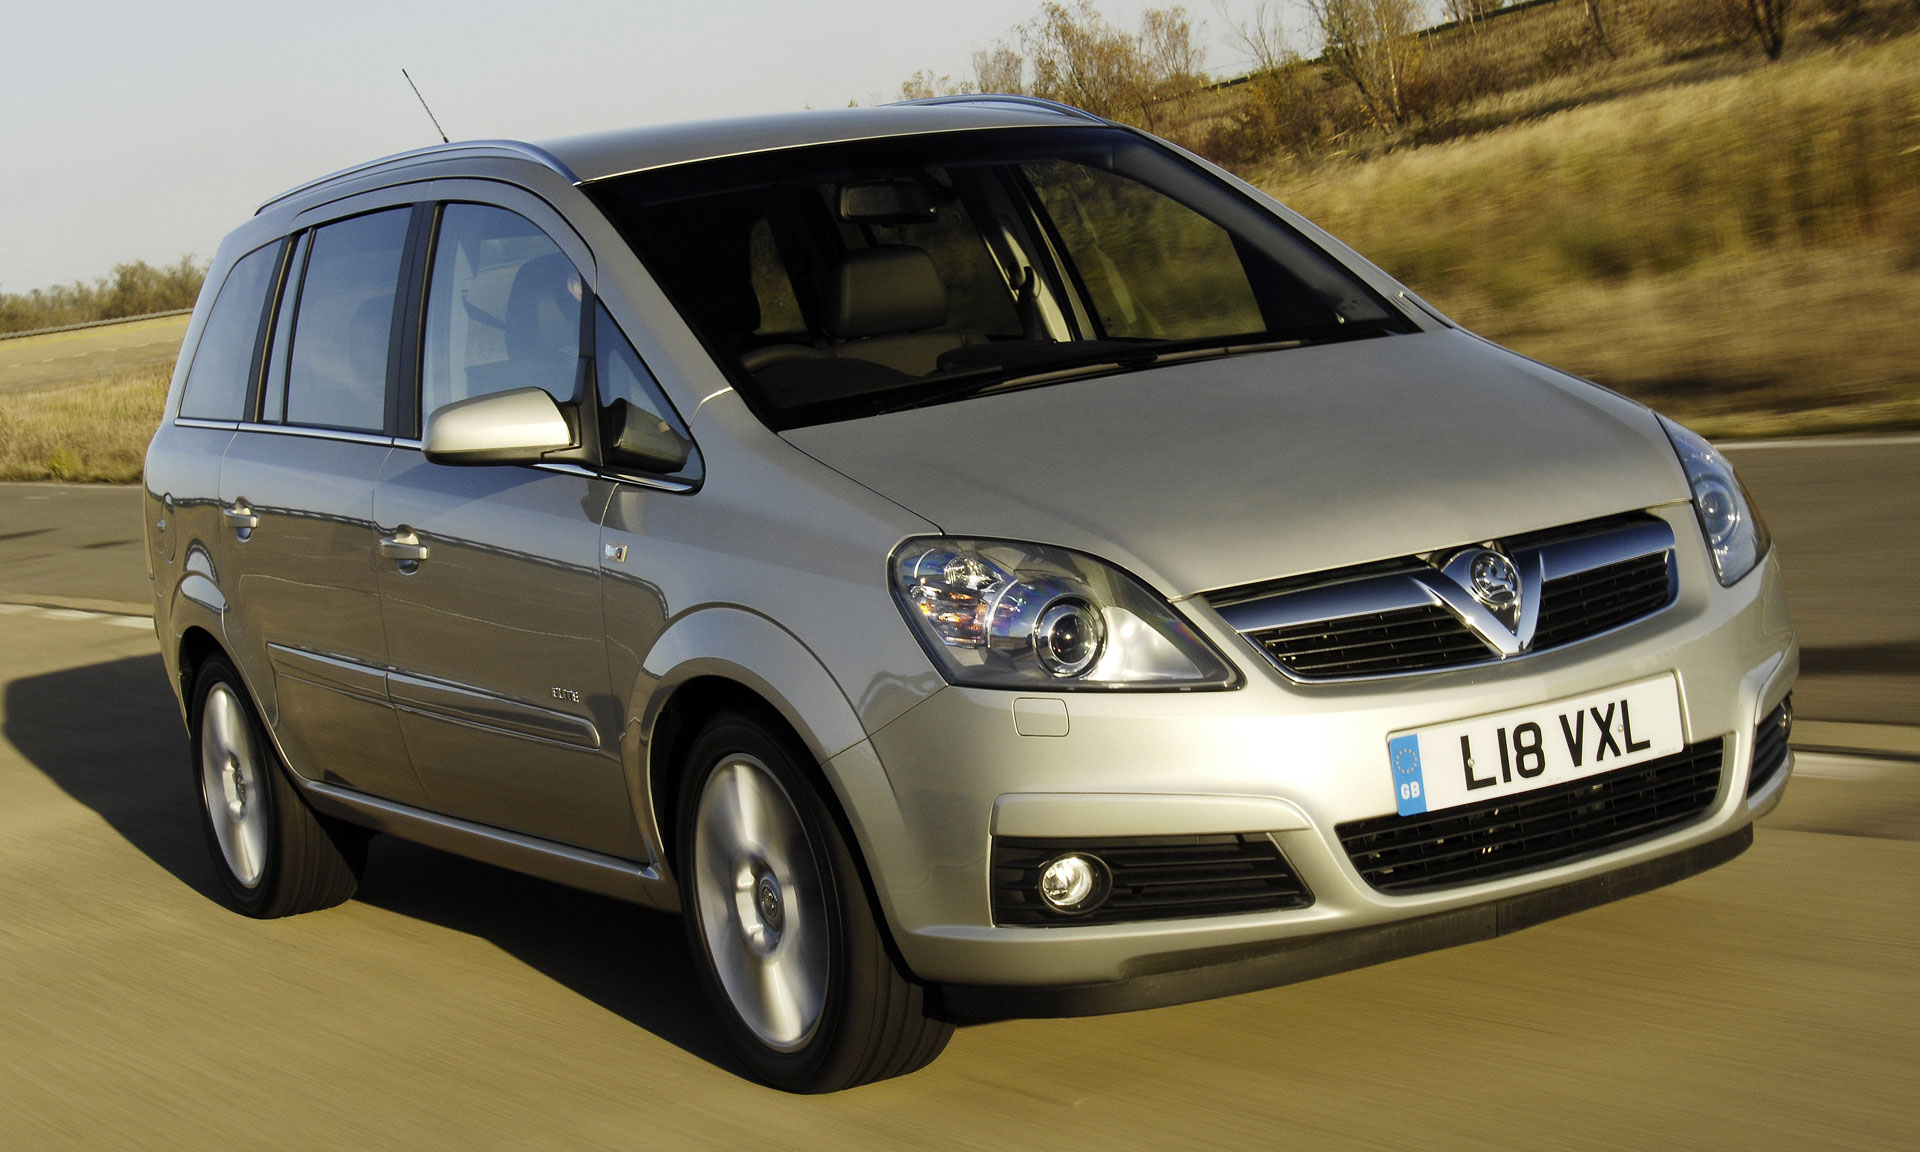 hight resolution of urgent vauxhall recall affects more than 40 000 zafira cars in the uk